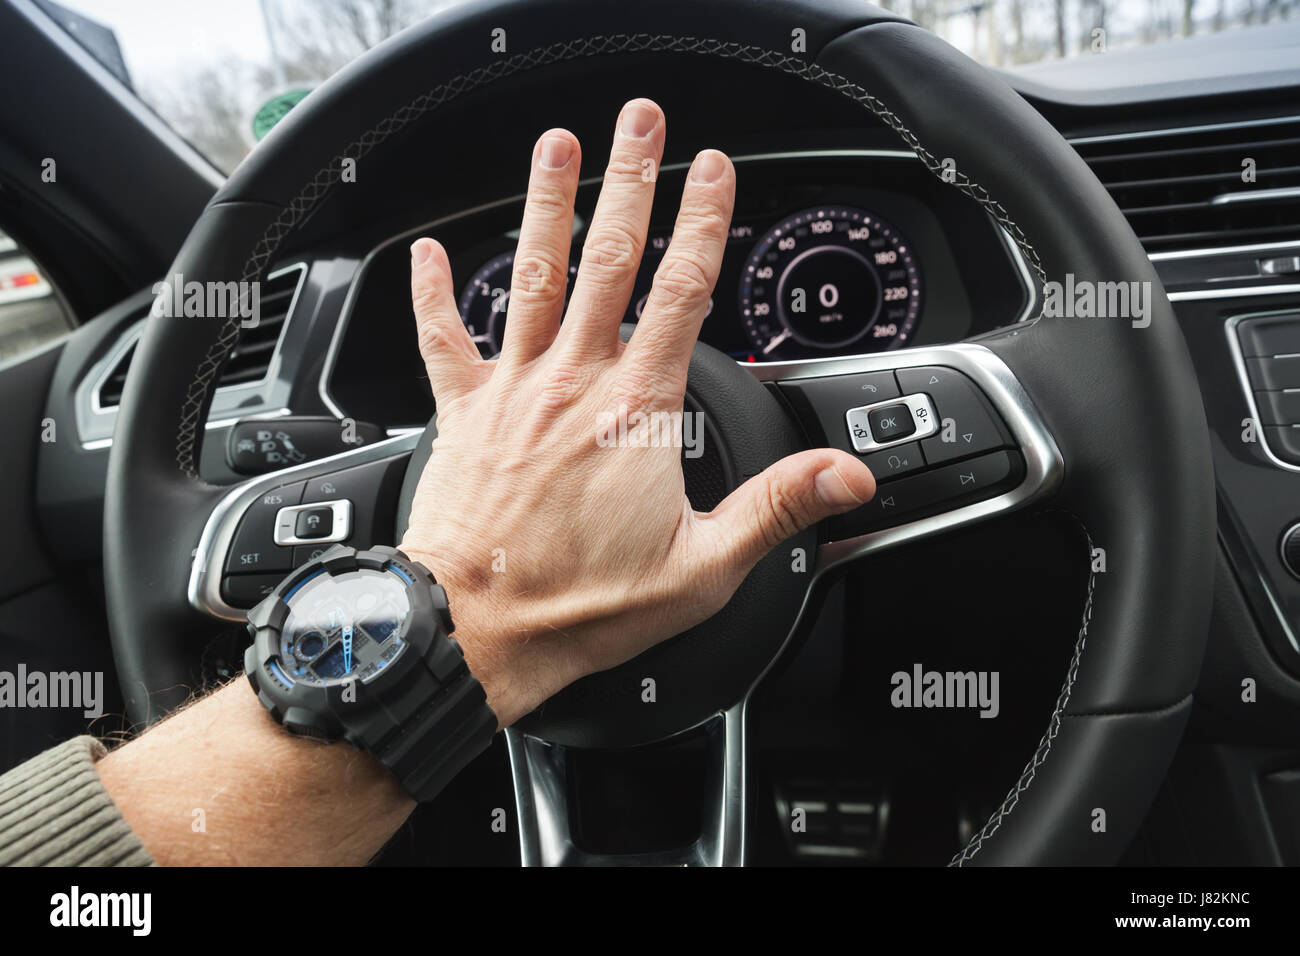 Driver angry pushes a steering wheel klaxon of luxury car. Closeup photo with selective focus - Stock Image